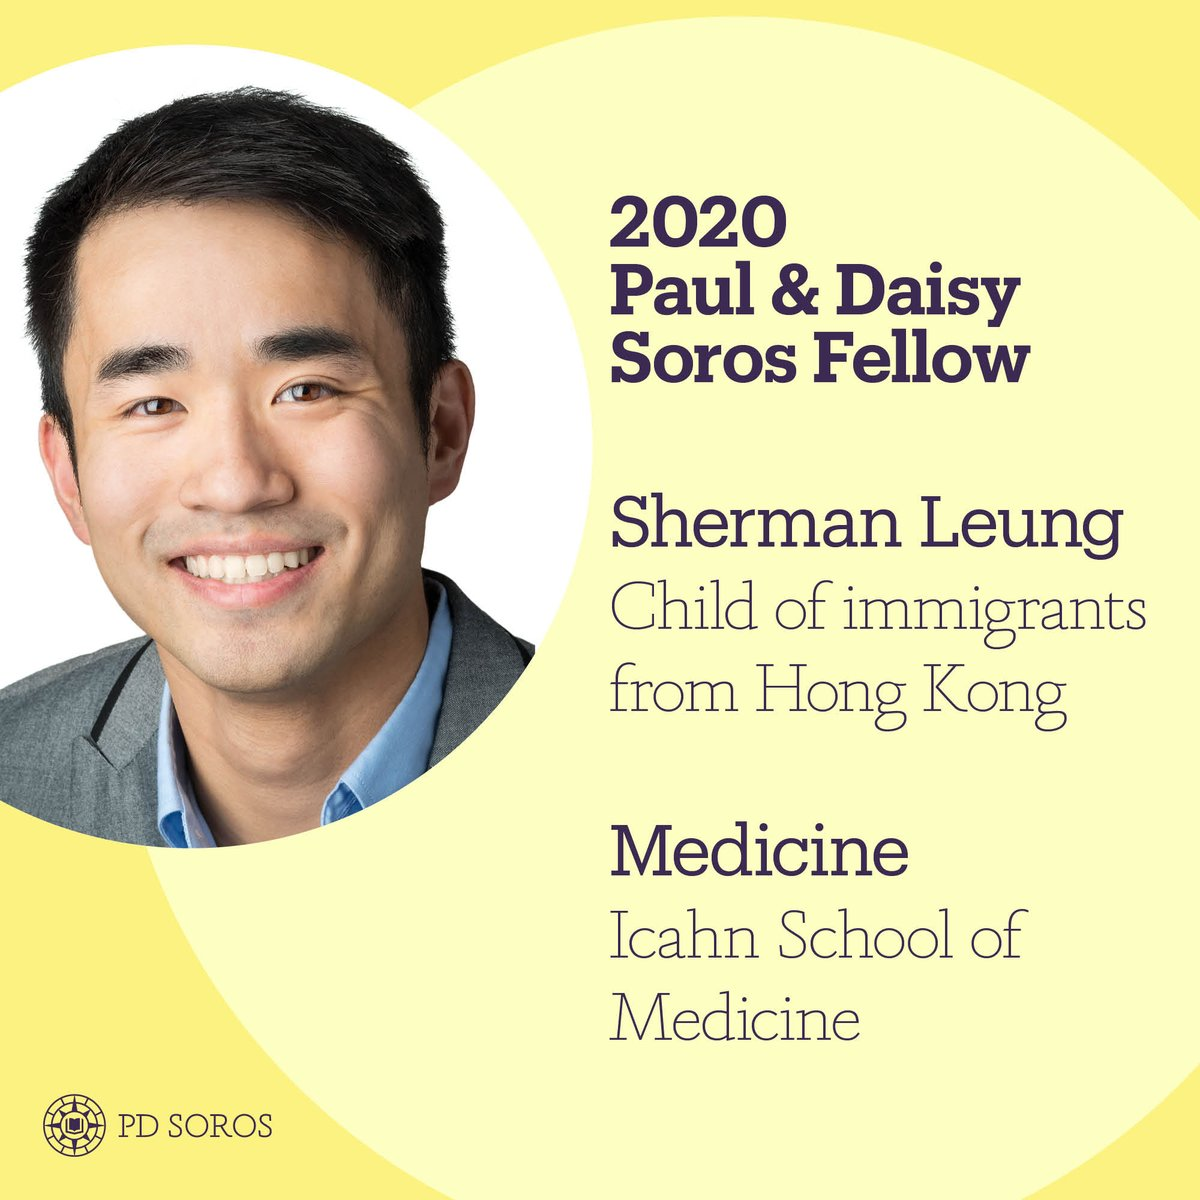 Sherman Leung, 2020 Paul & Daisy Soros Fellow